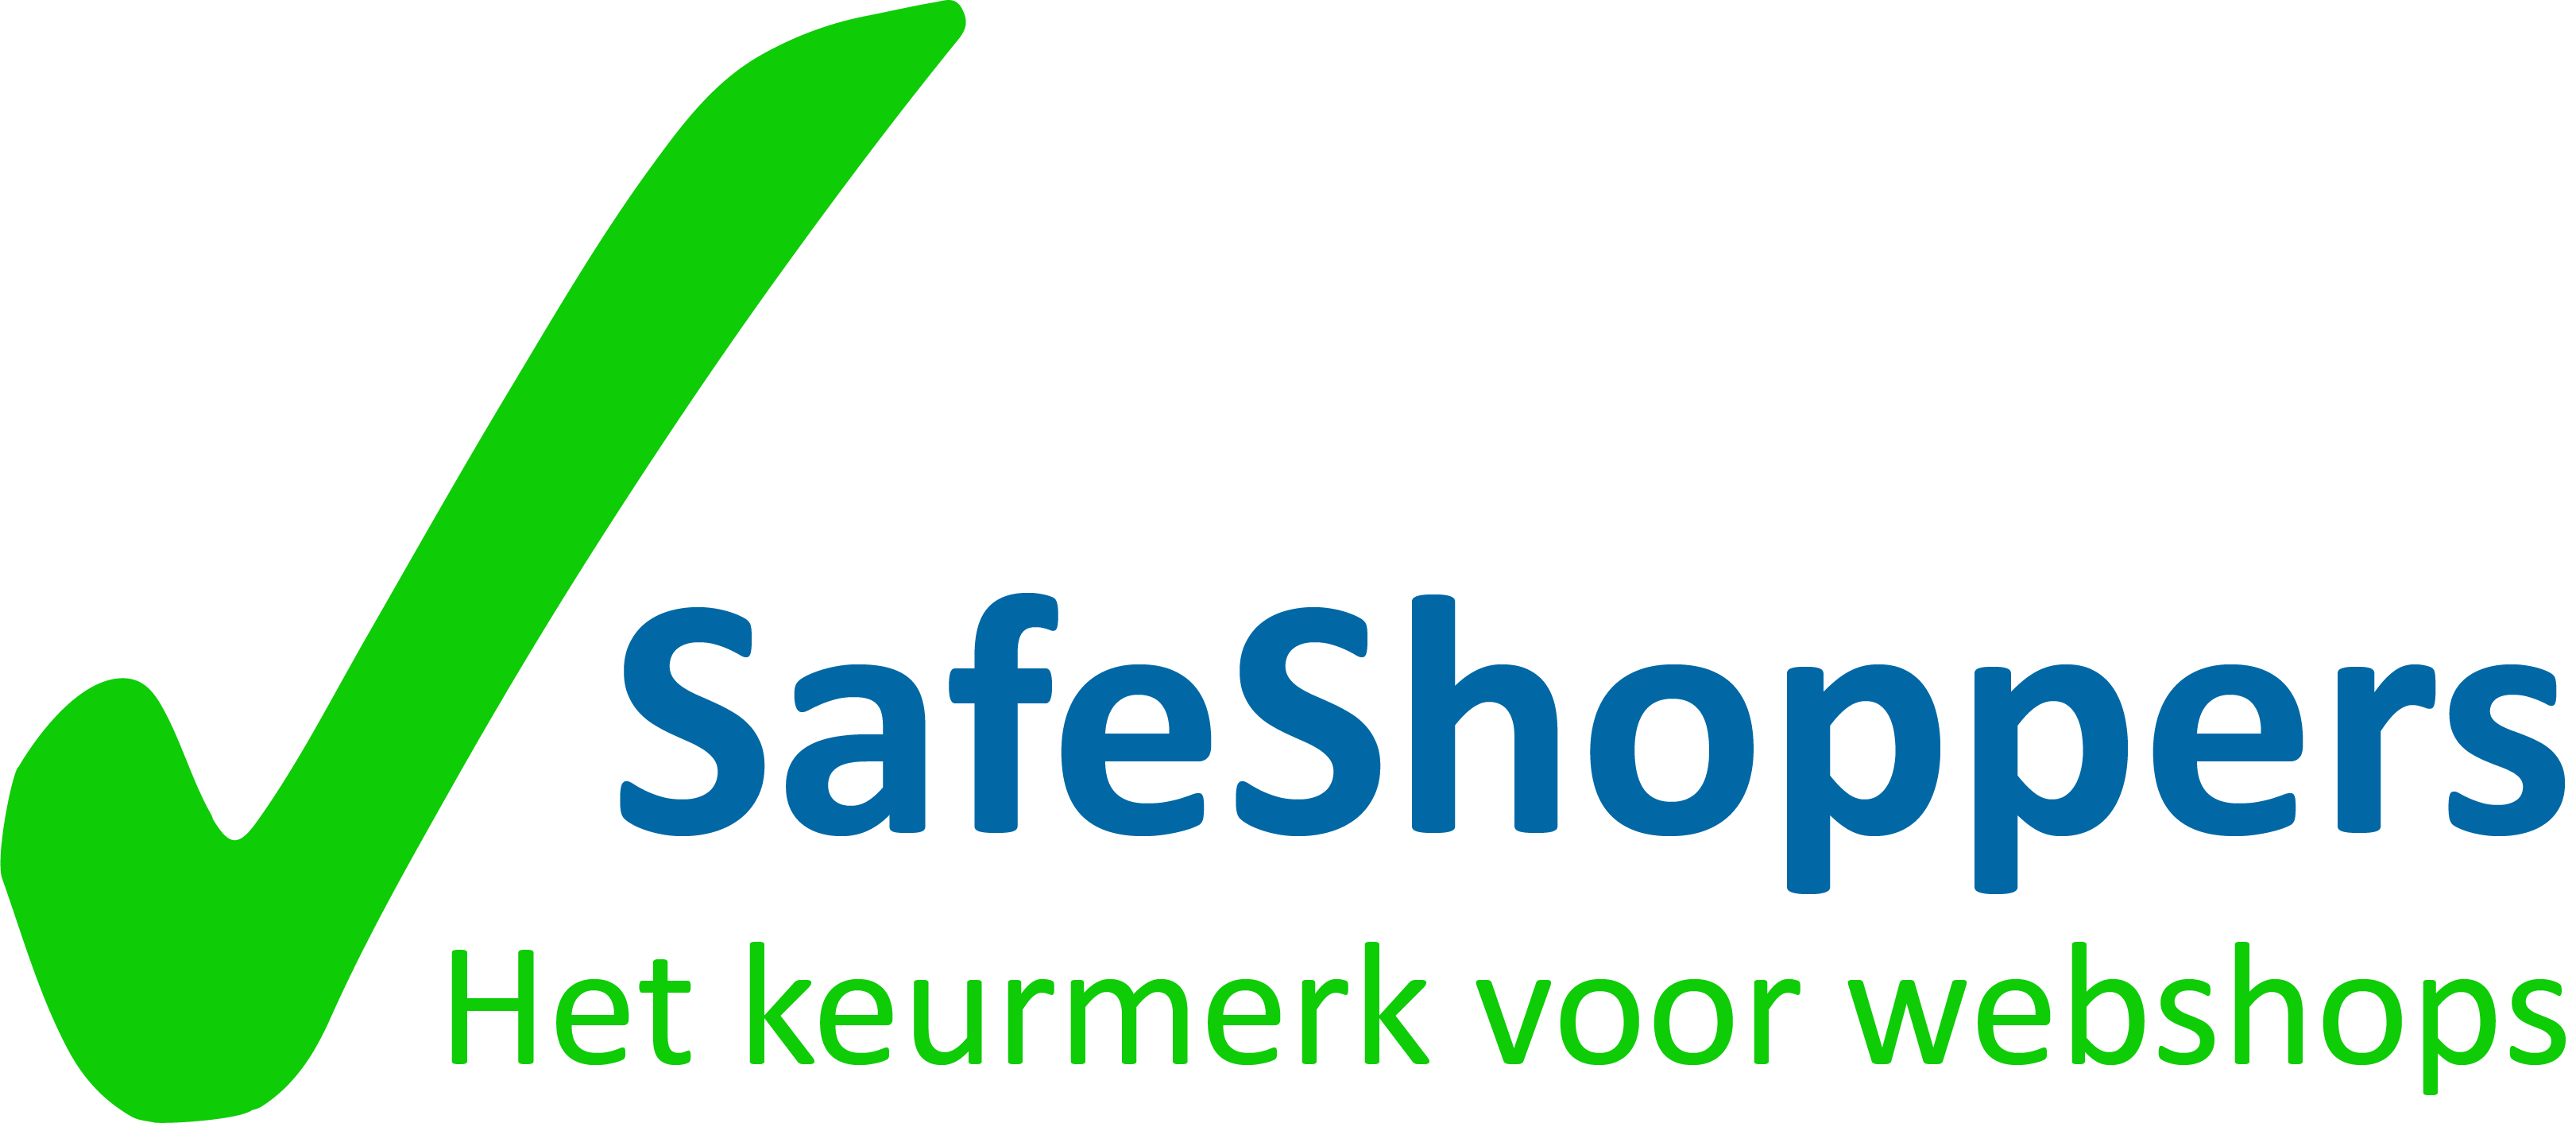 SafeShopper